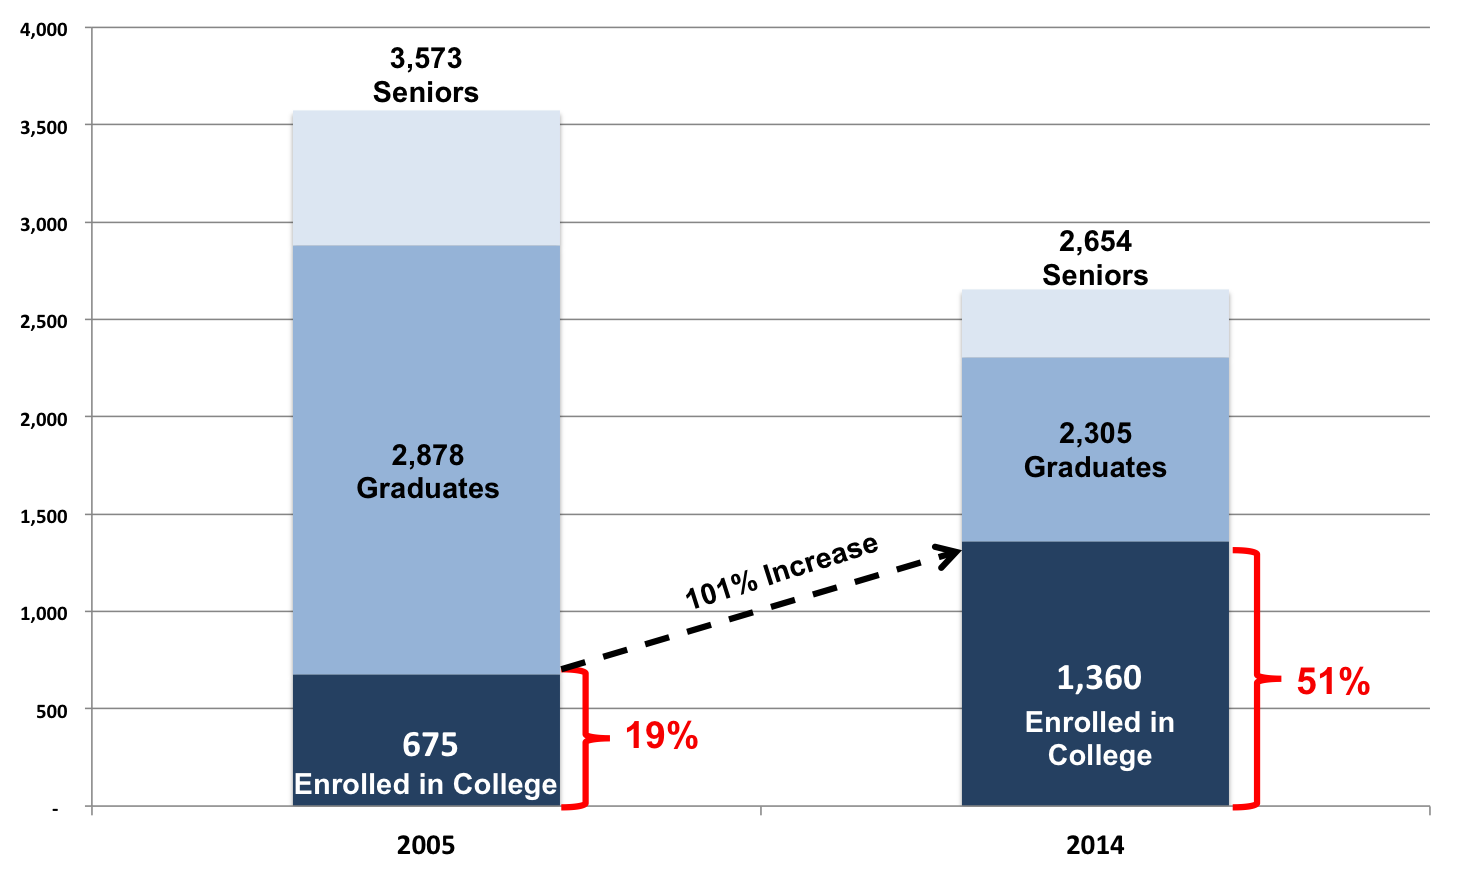 College Enrollment